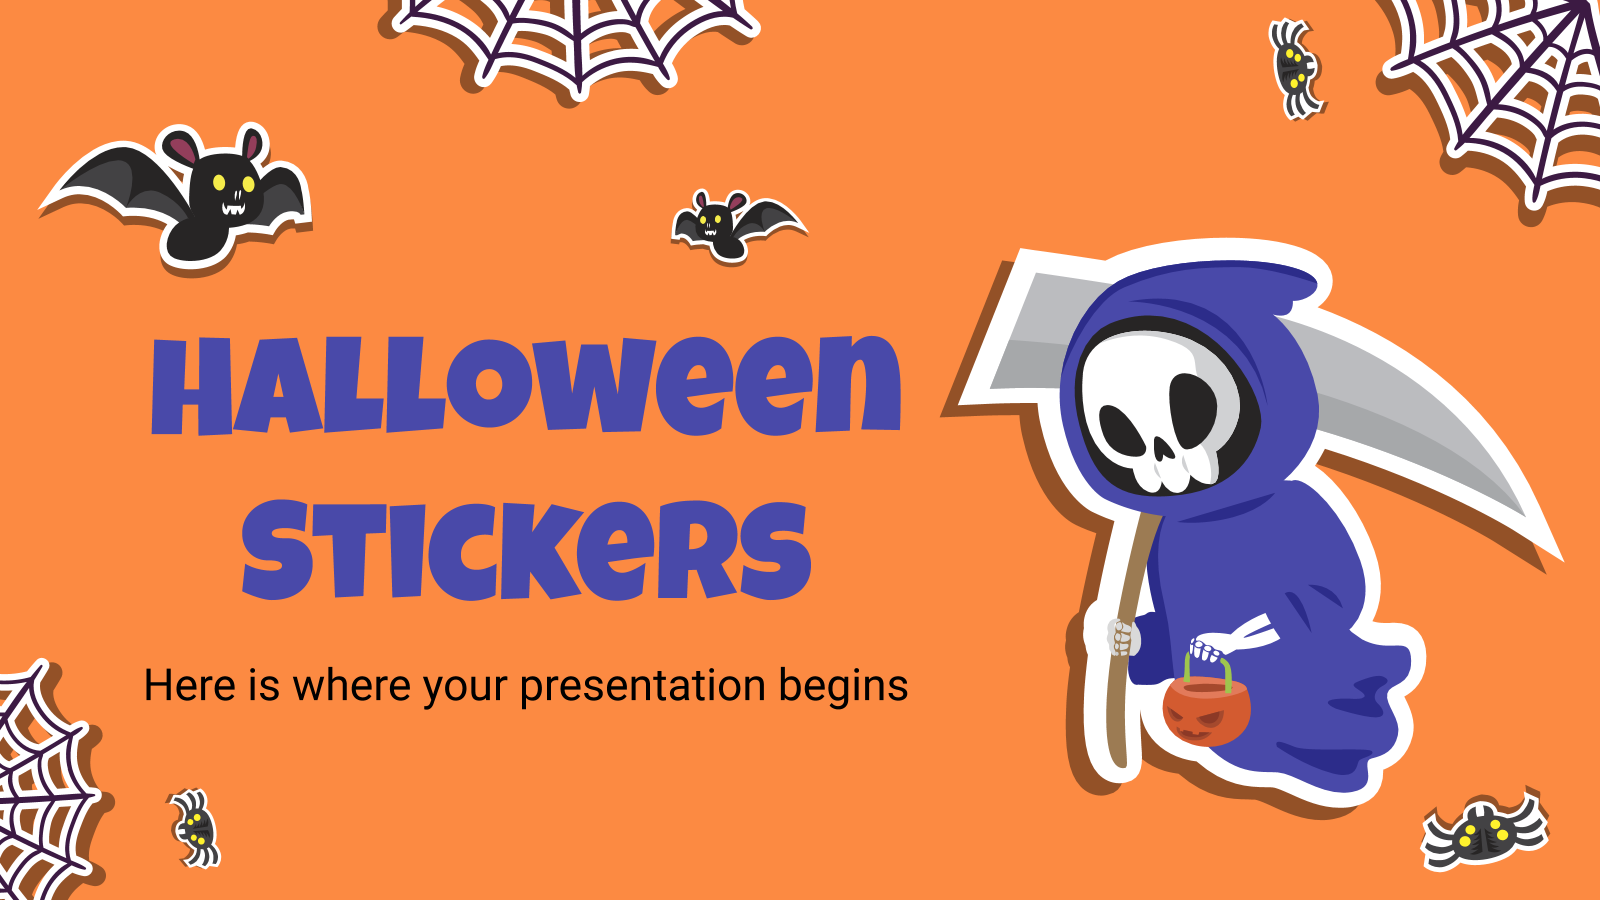 Halloween Stickers Google Slides Theme Powerpoint Template